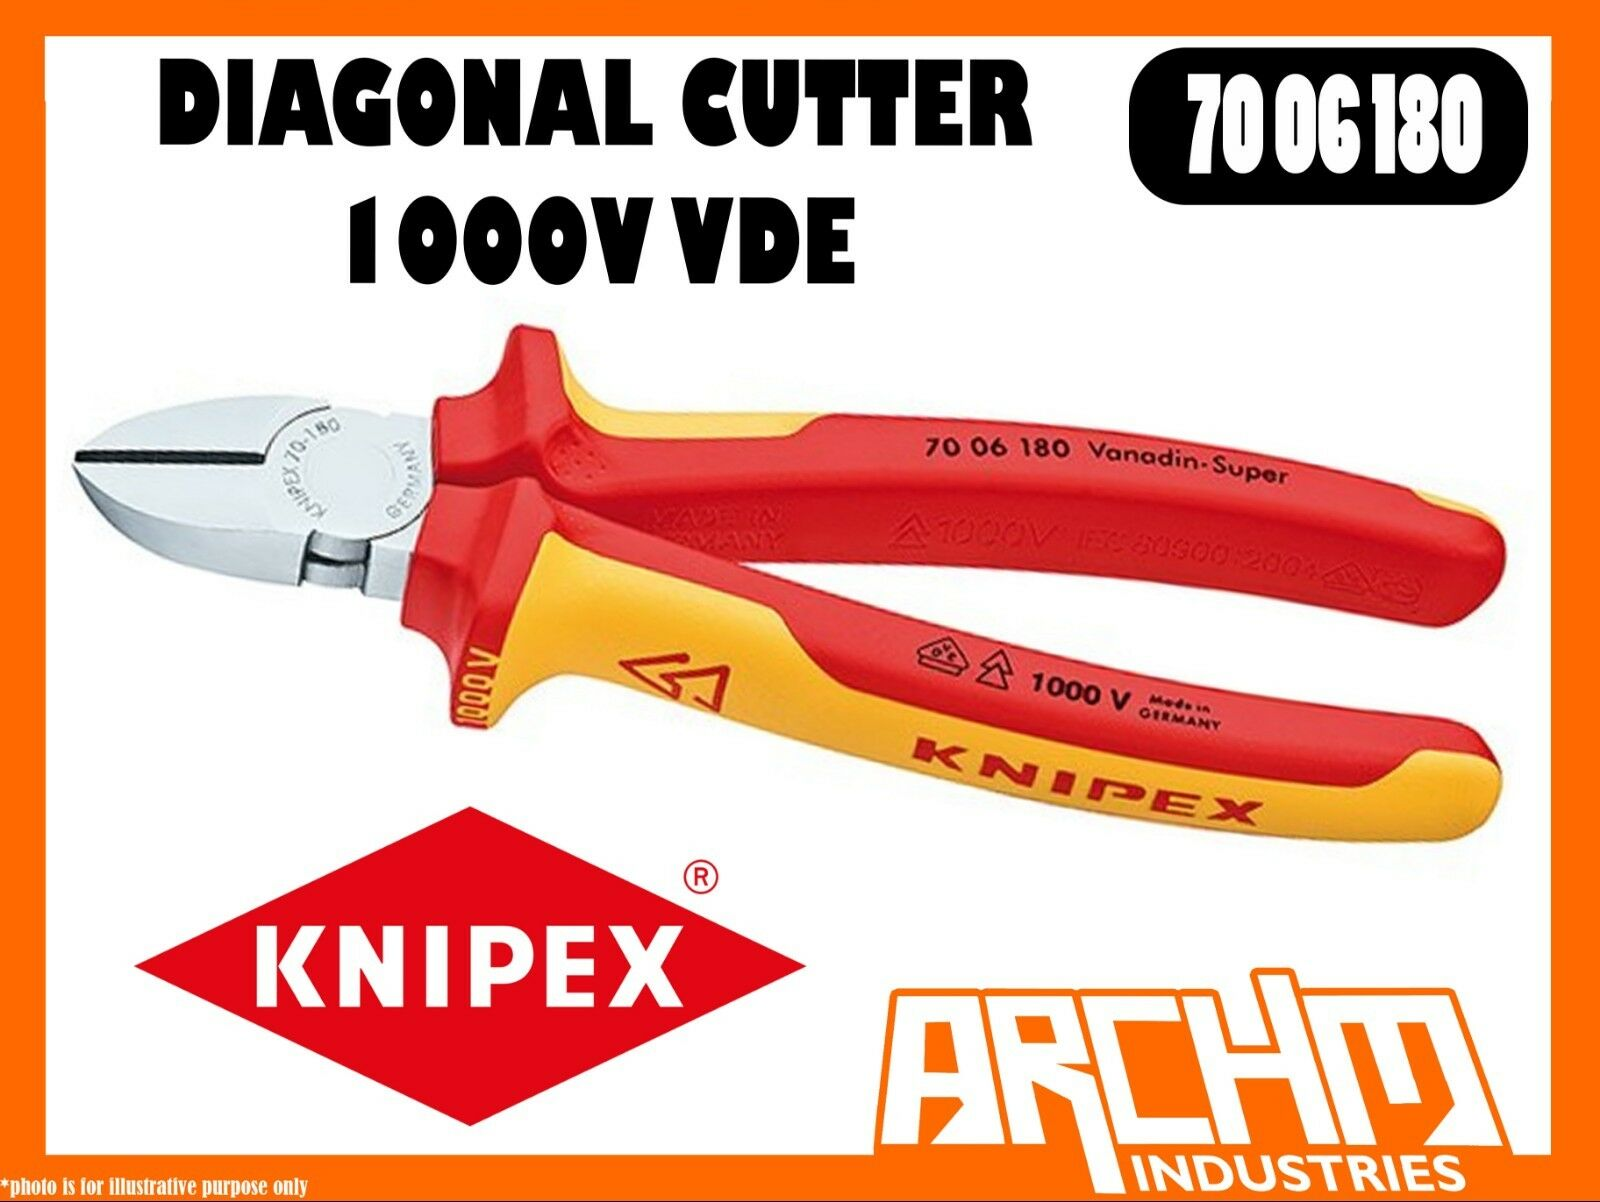 KNIPEX 7006180 - DIAGONAL CUTTER 1000 VDE 180MM CUTTING EDGES HARDENED PRECISION